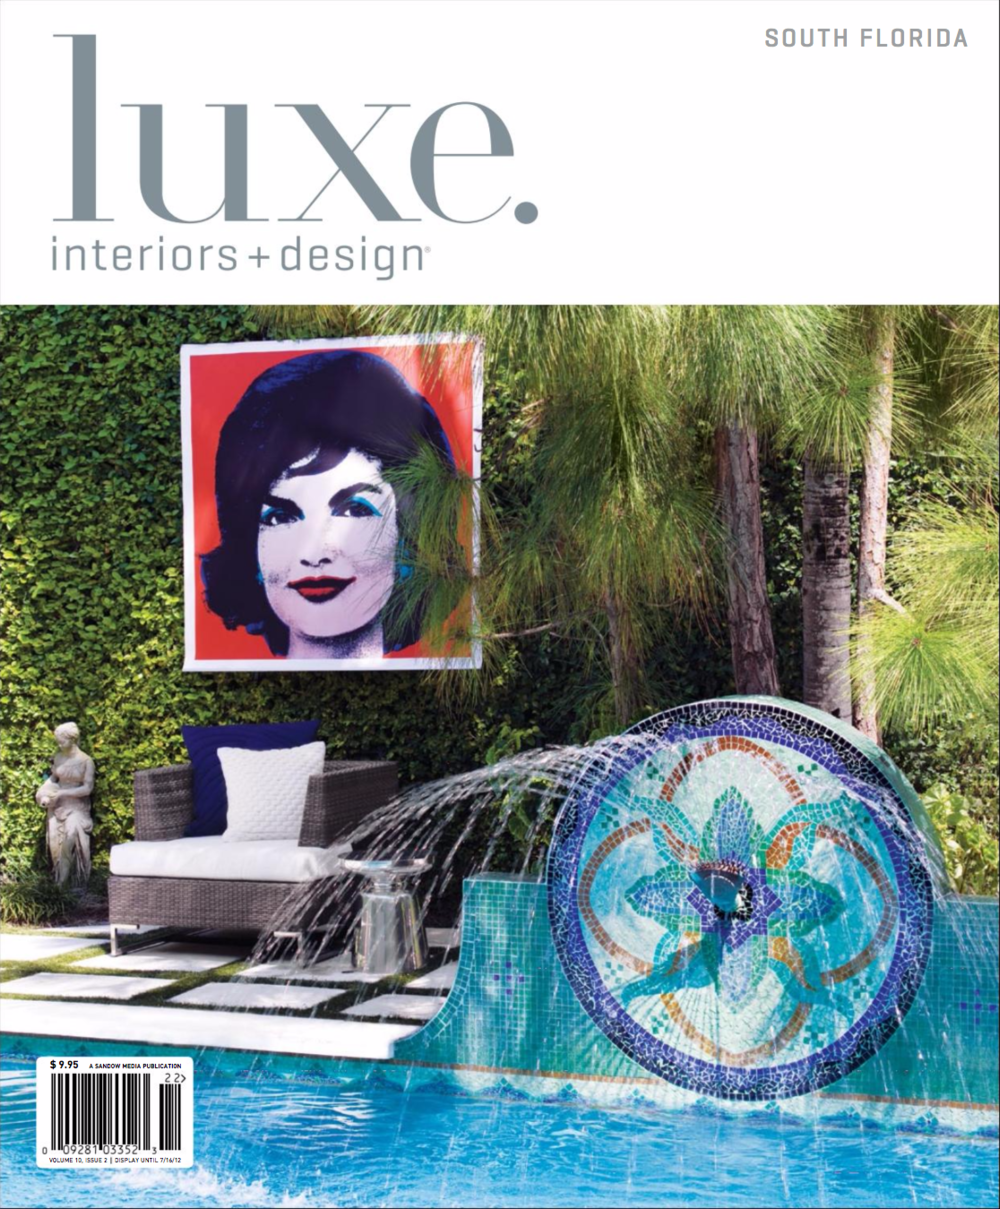 LuxeMagazine_AddingUp_1Cover.png